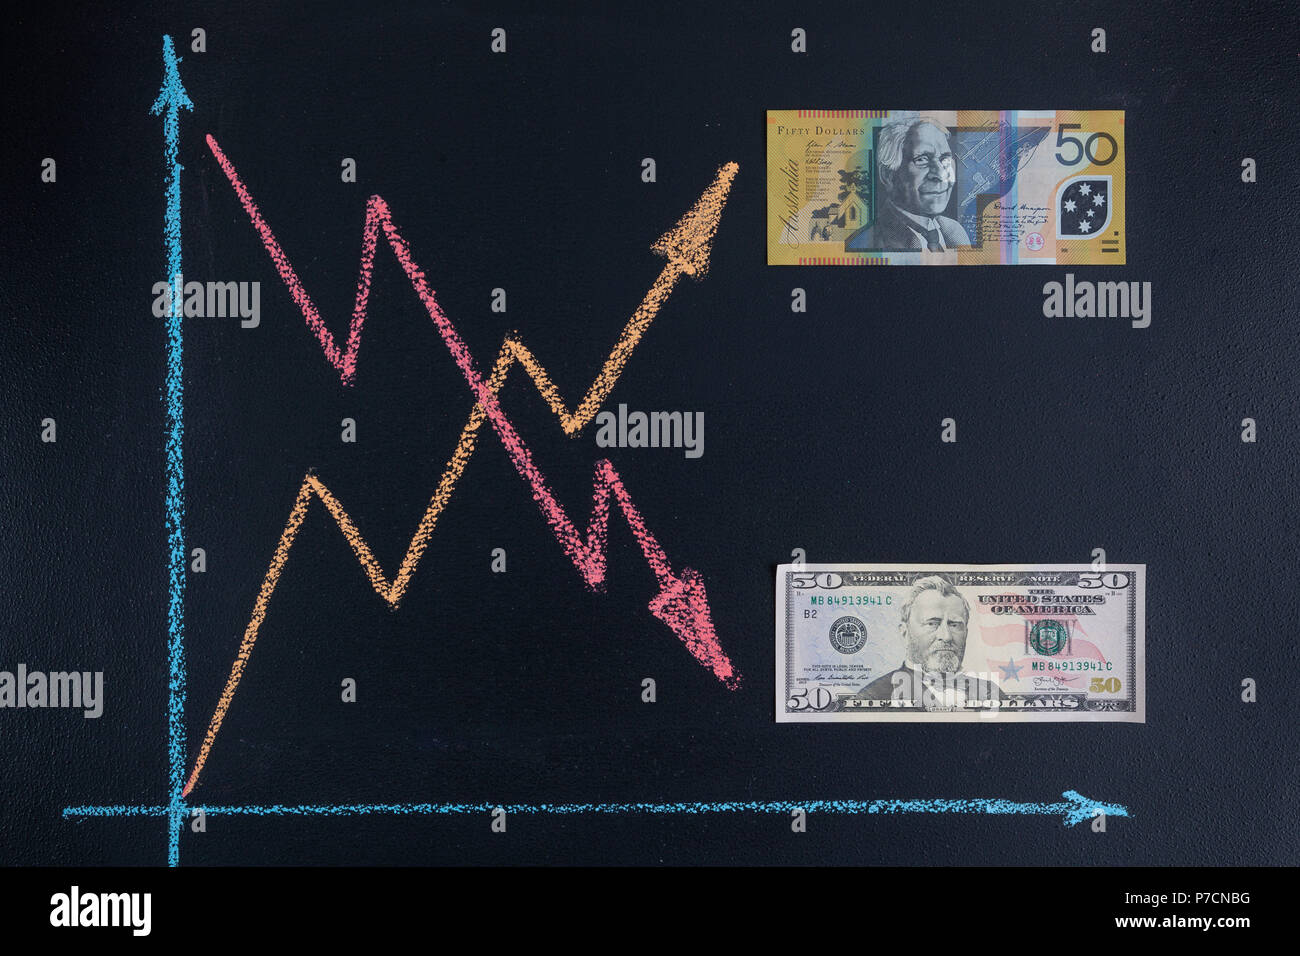 Forex currency trends concept - USD going down while AUD going up. Depicted with chalkboard line graph and paper currency. - Stock Image